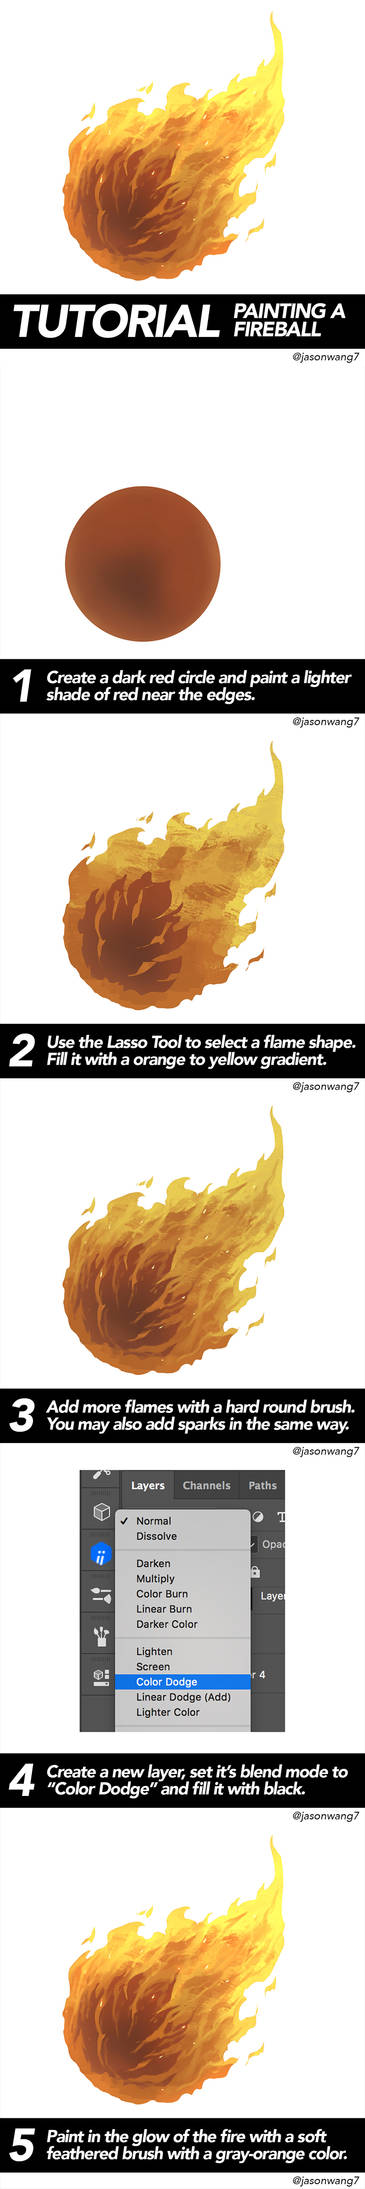 Fireball tutorial